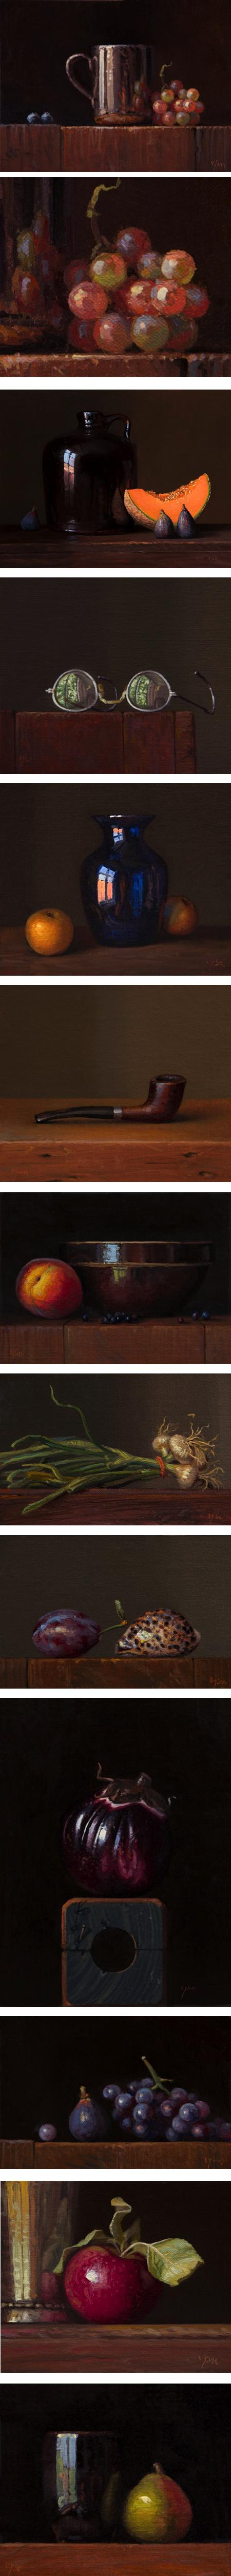 Abbey Ryan, still life